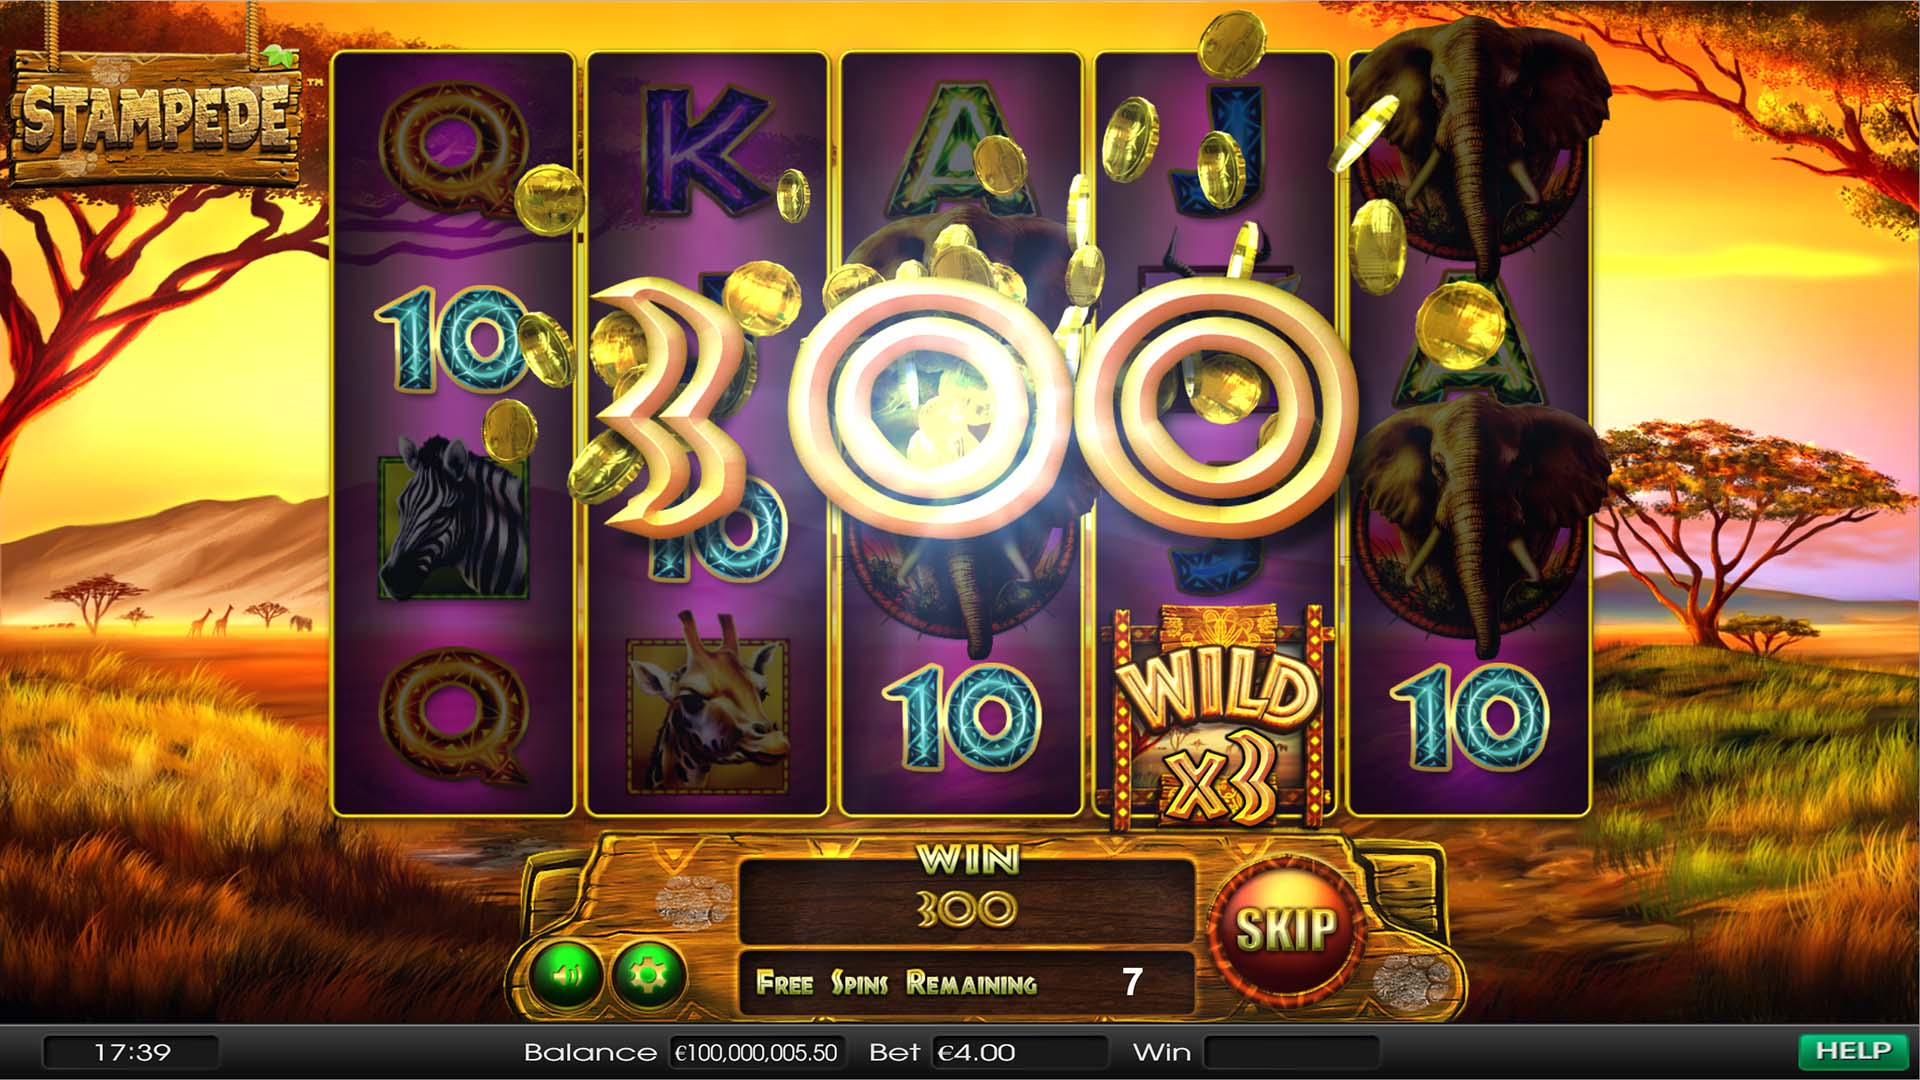 Play Stampede Jackpot Slot Game